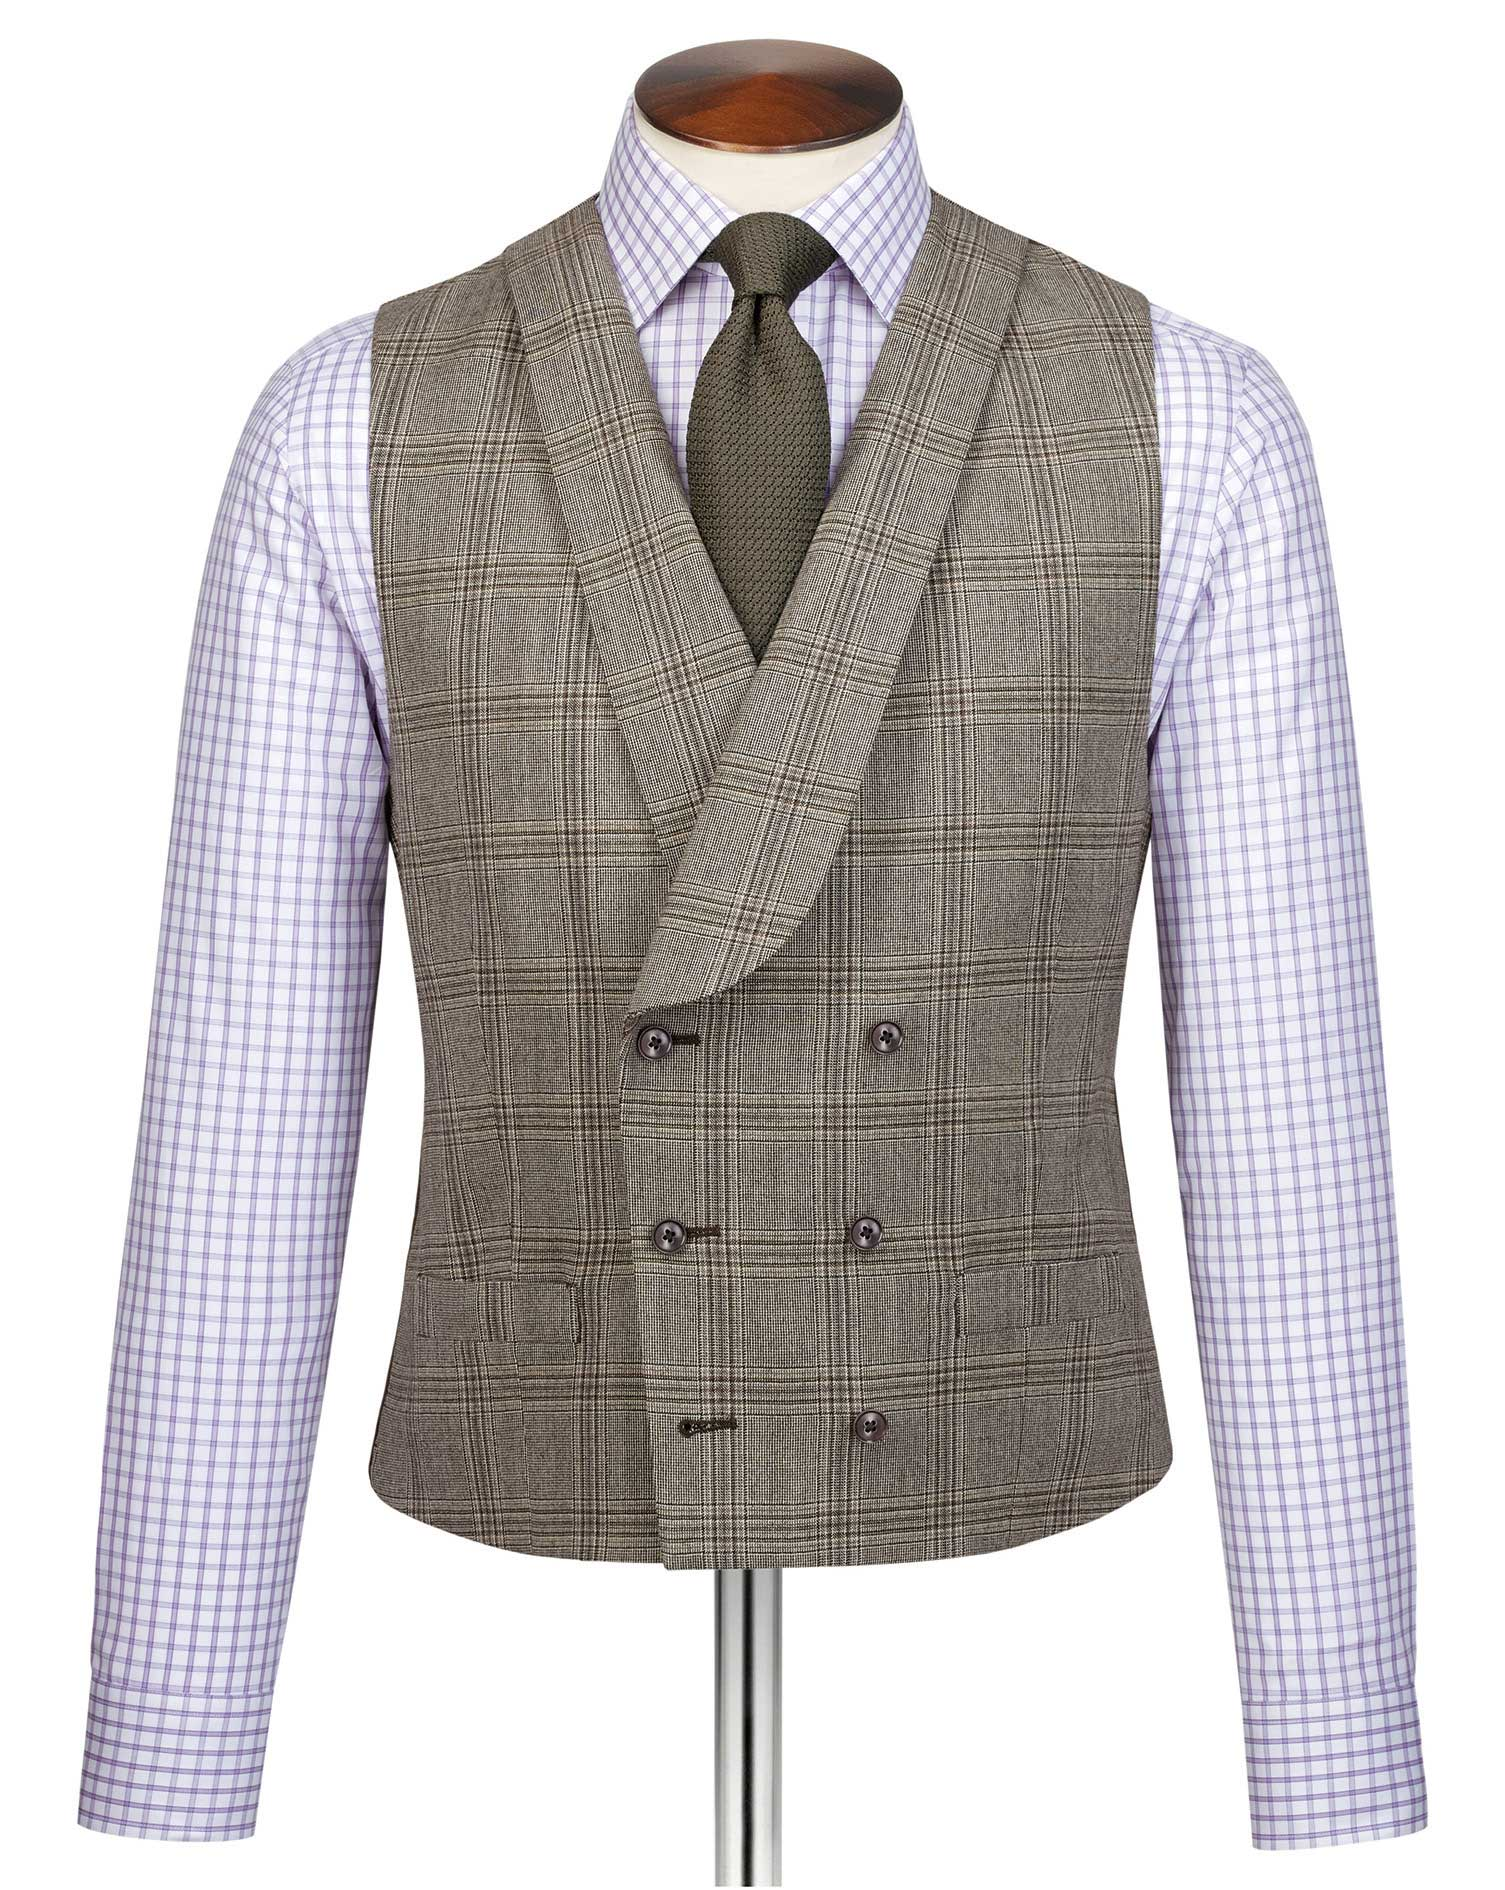 Grey adjustable fit British serge luxury suit vest